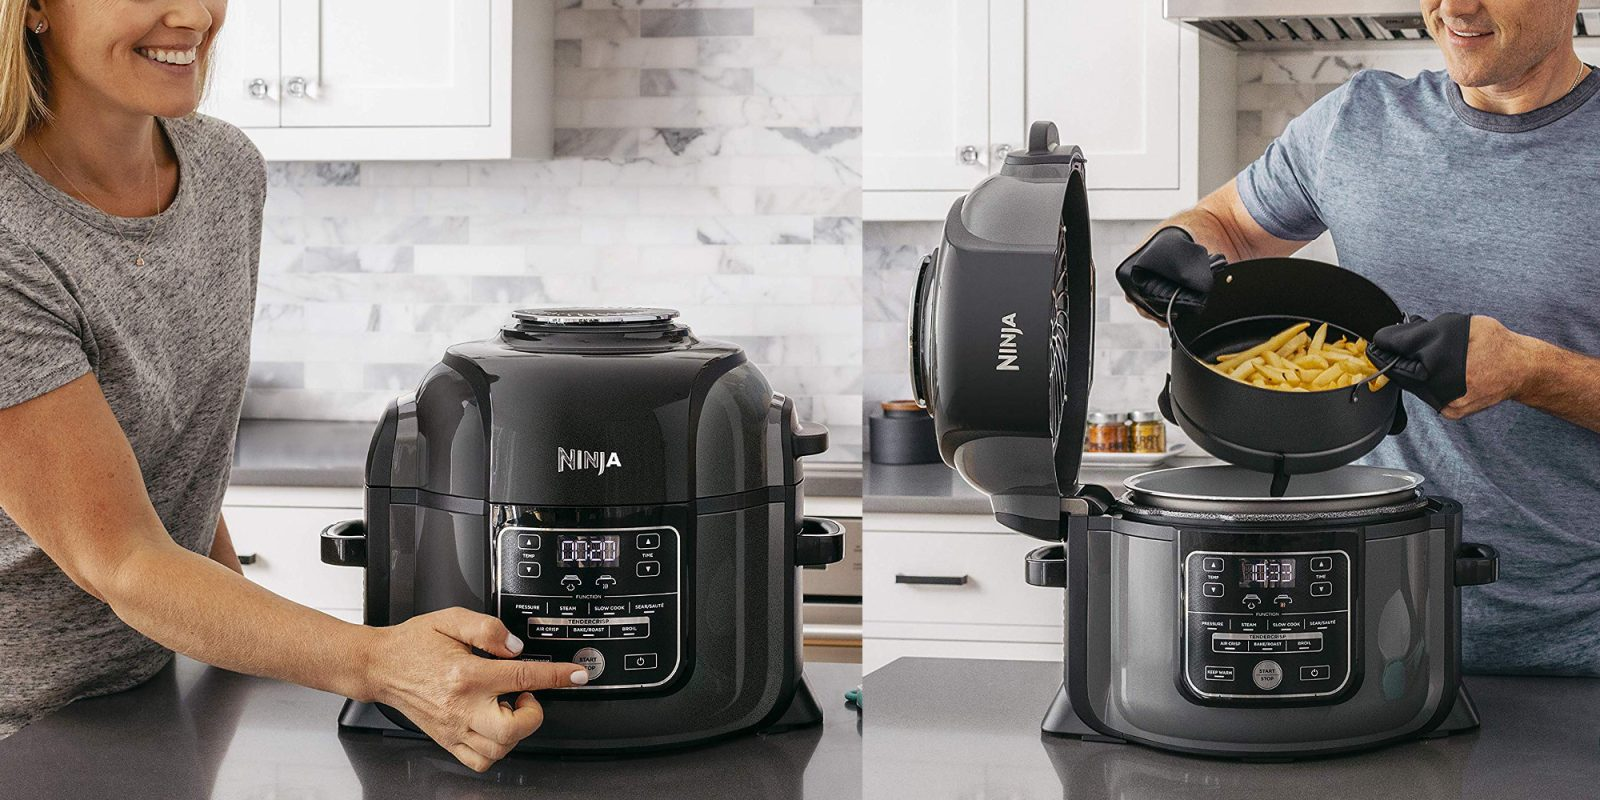 Ninja's refurb 6.5-quart Pressure Cooker/Air Fryer is now at least $90 off